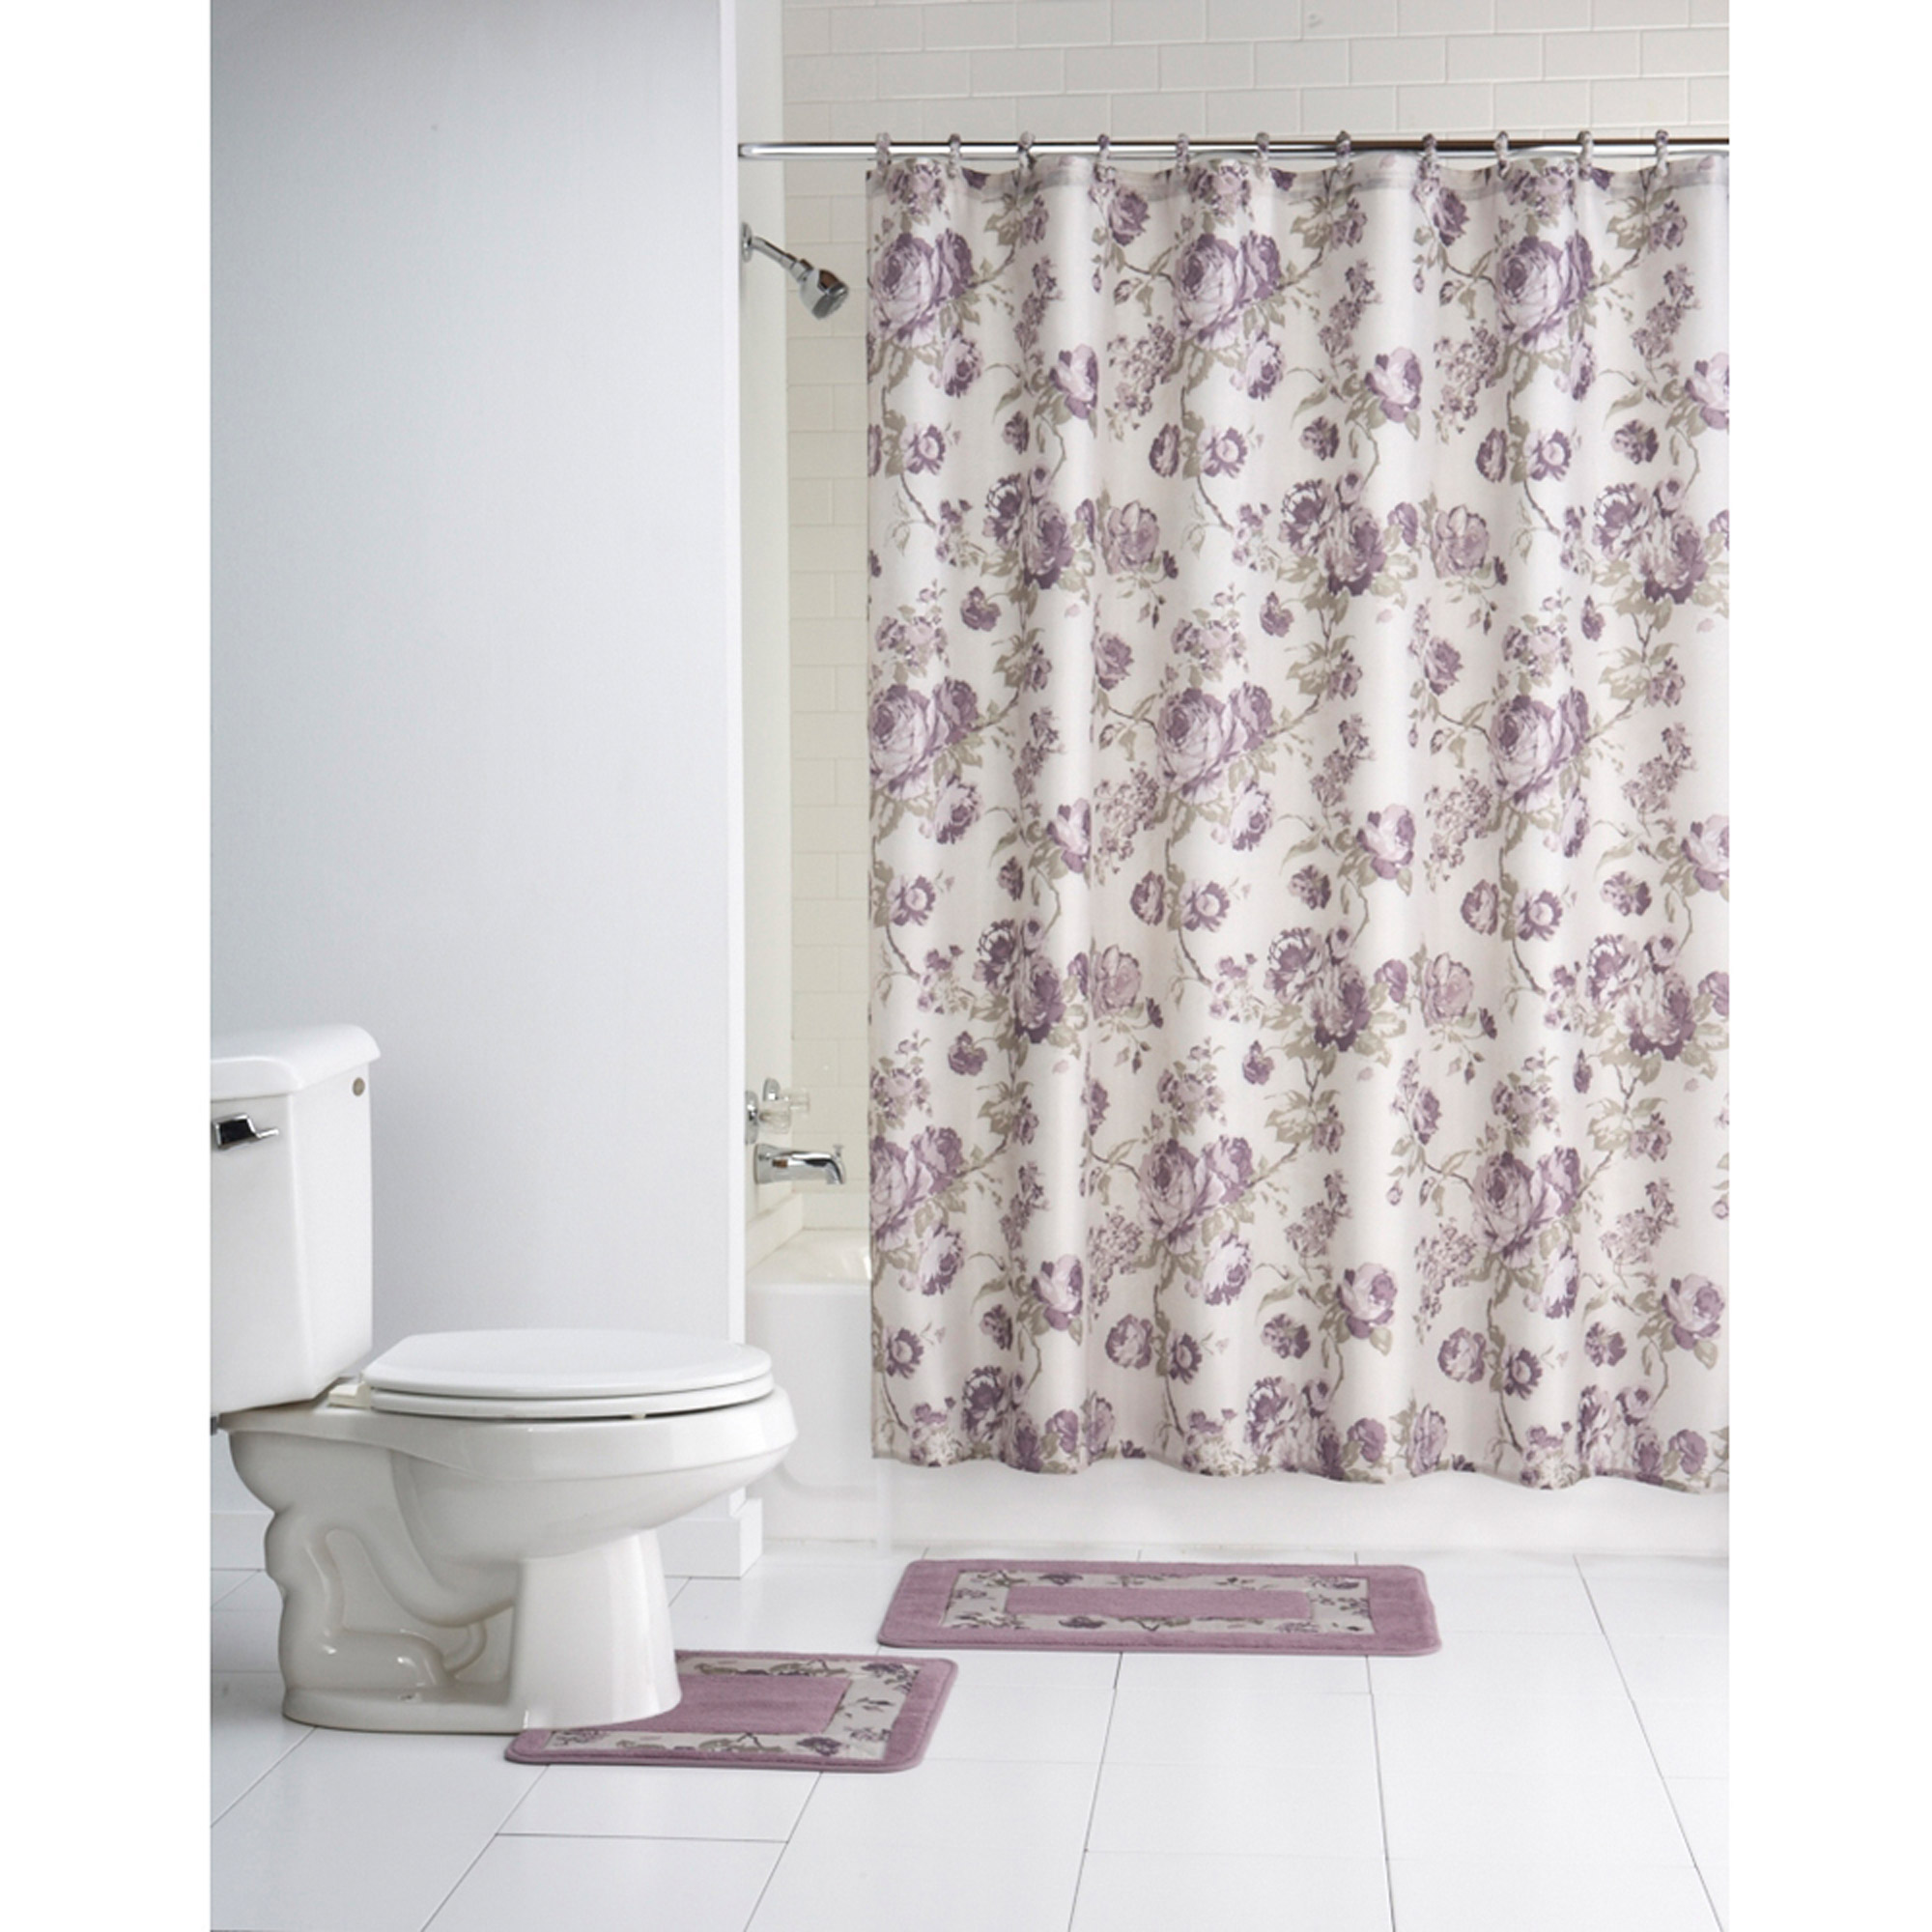 Bathroom sets walmart - Mainstays Multi Color Floral Chelsea 15 Piece Polyester Bath In A Bag Set Shower Curtain And Bath Rugs Included Walmart Com